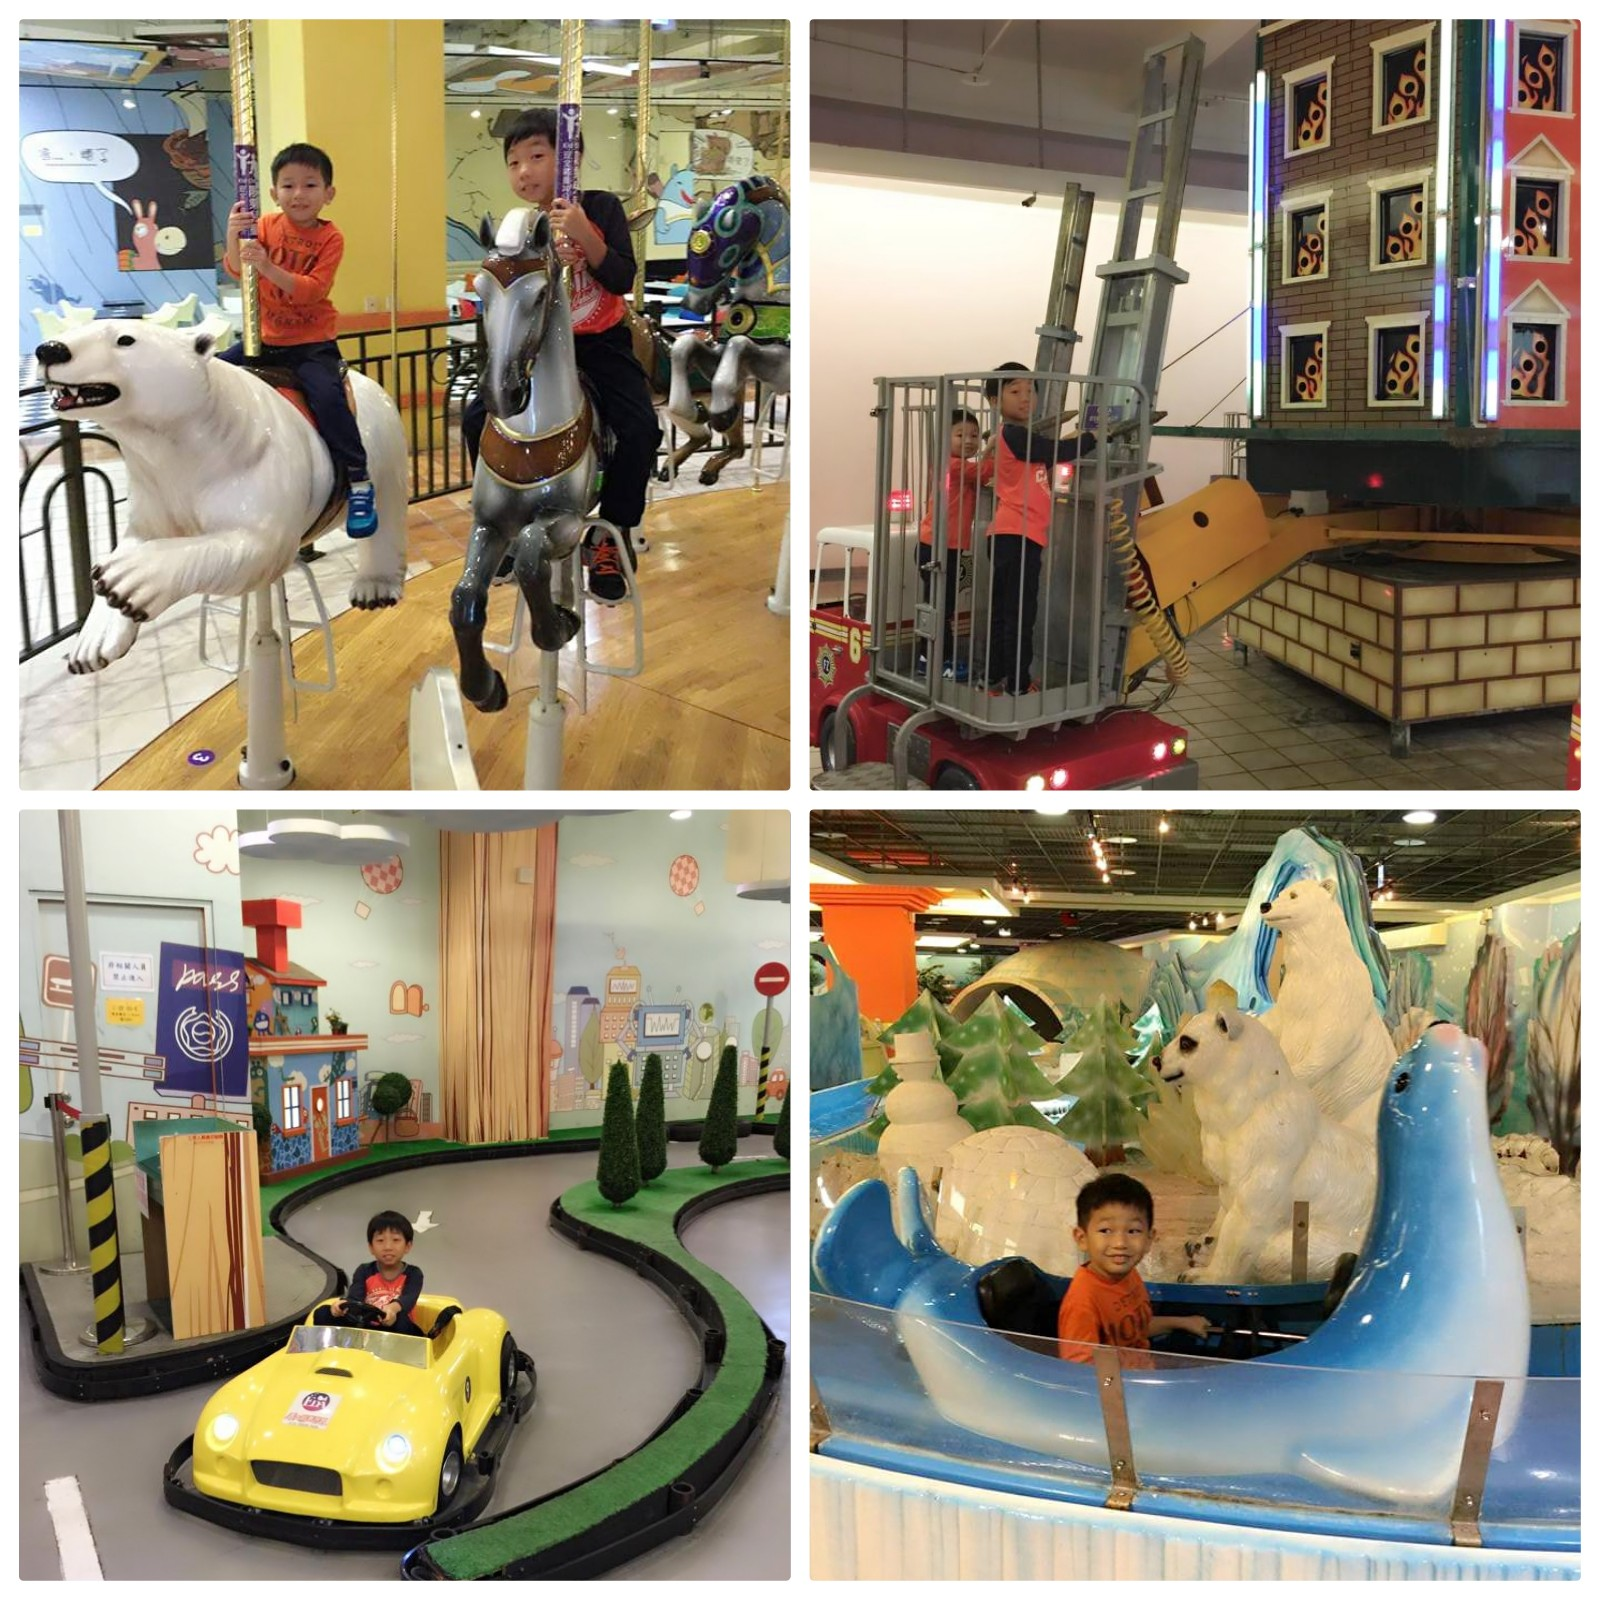 Family travels EDA Park Kaohsiung fun indoor rides